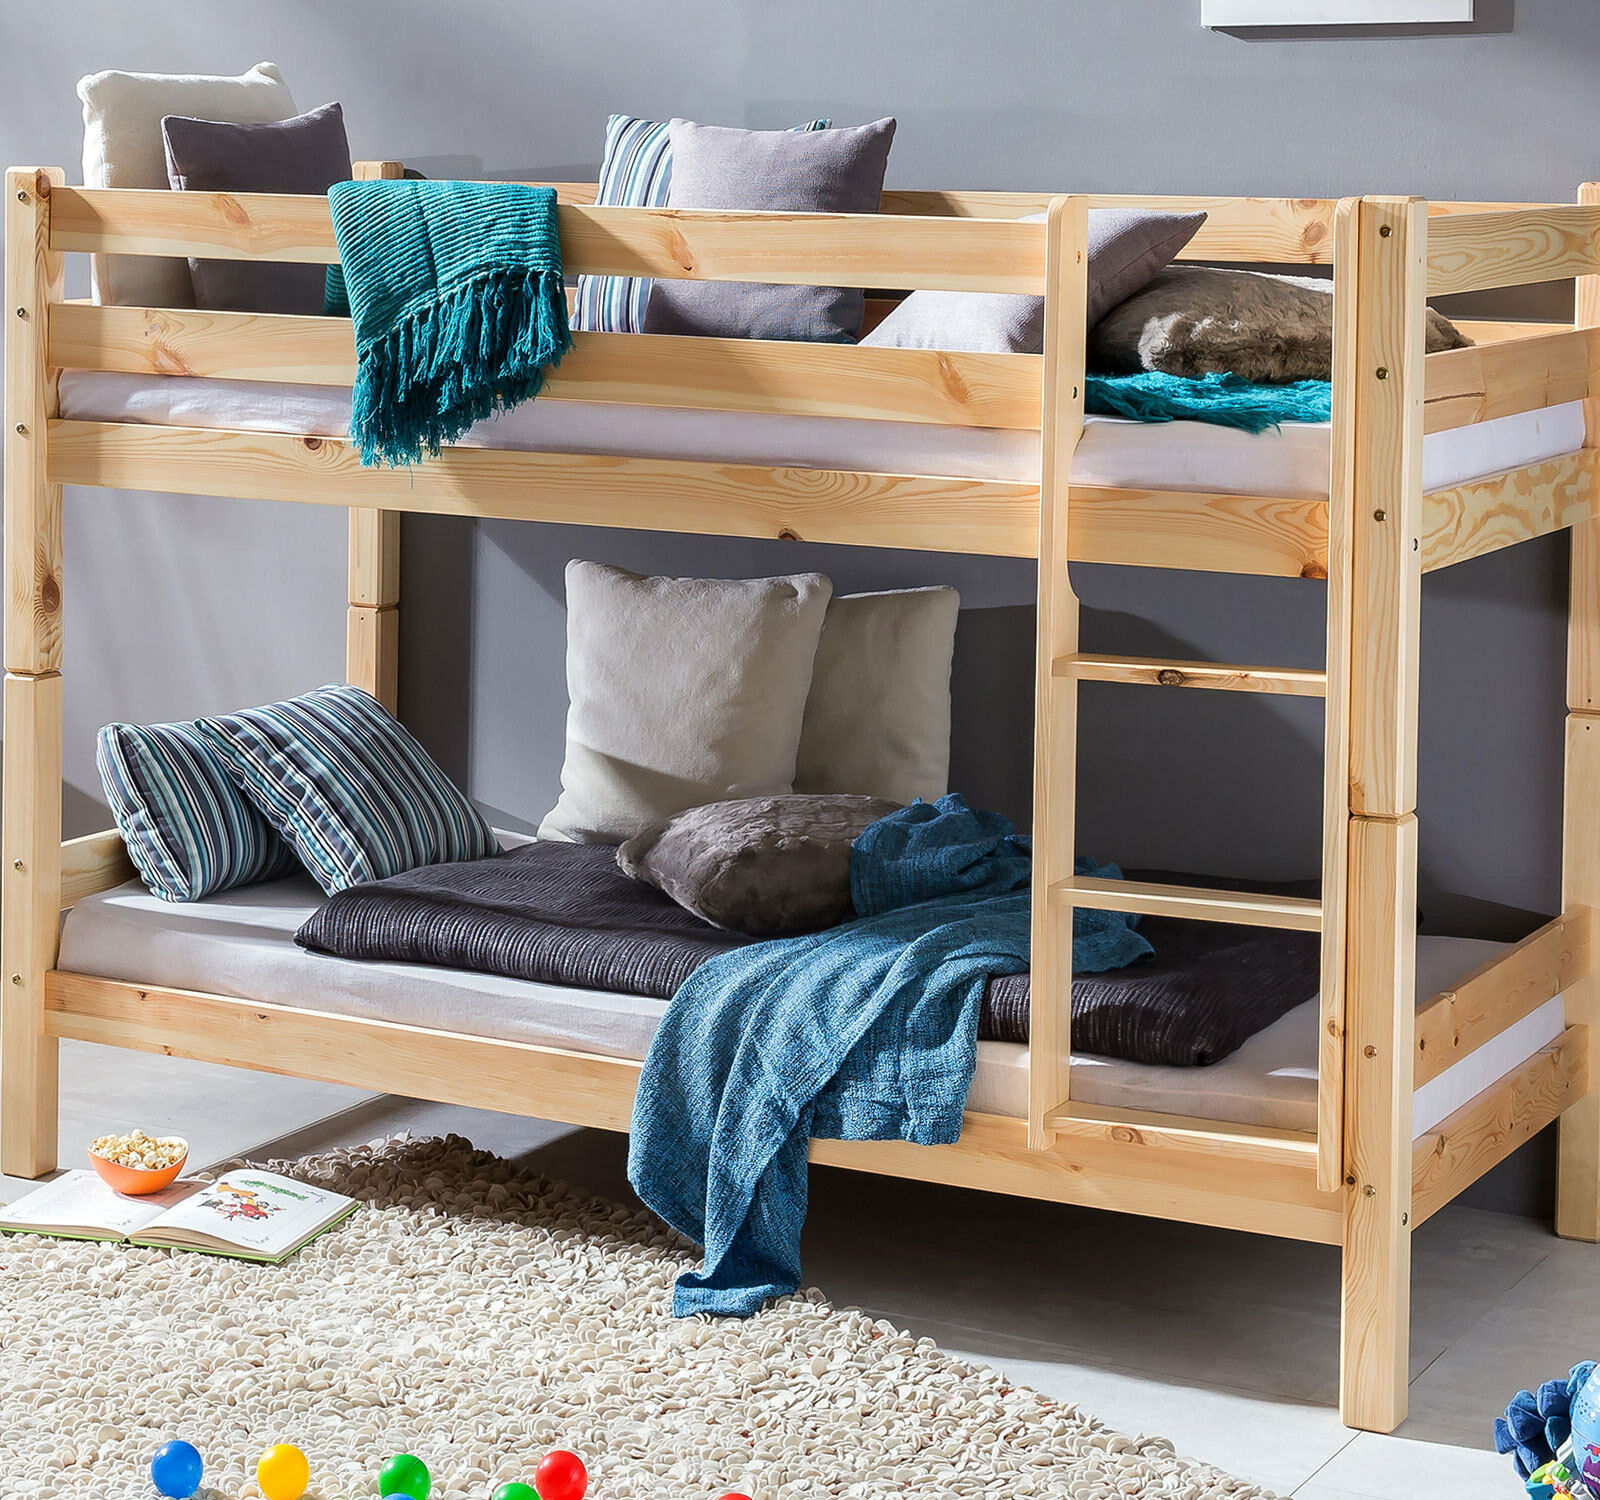 etagenbett kinderbett hochbett spielbett kiefer massiv holz teilbar pfosten 70mm ebay. Black Bedroom Furniture Sets. Home Design Ideas